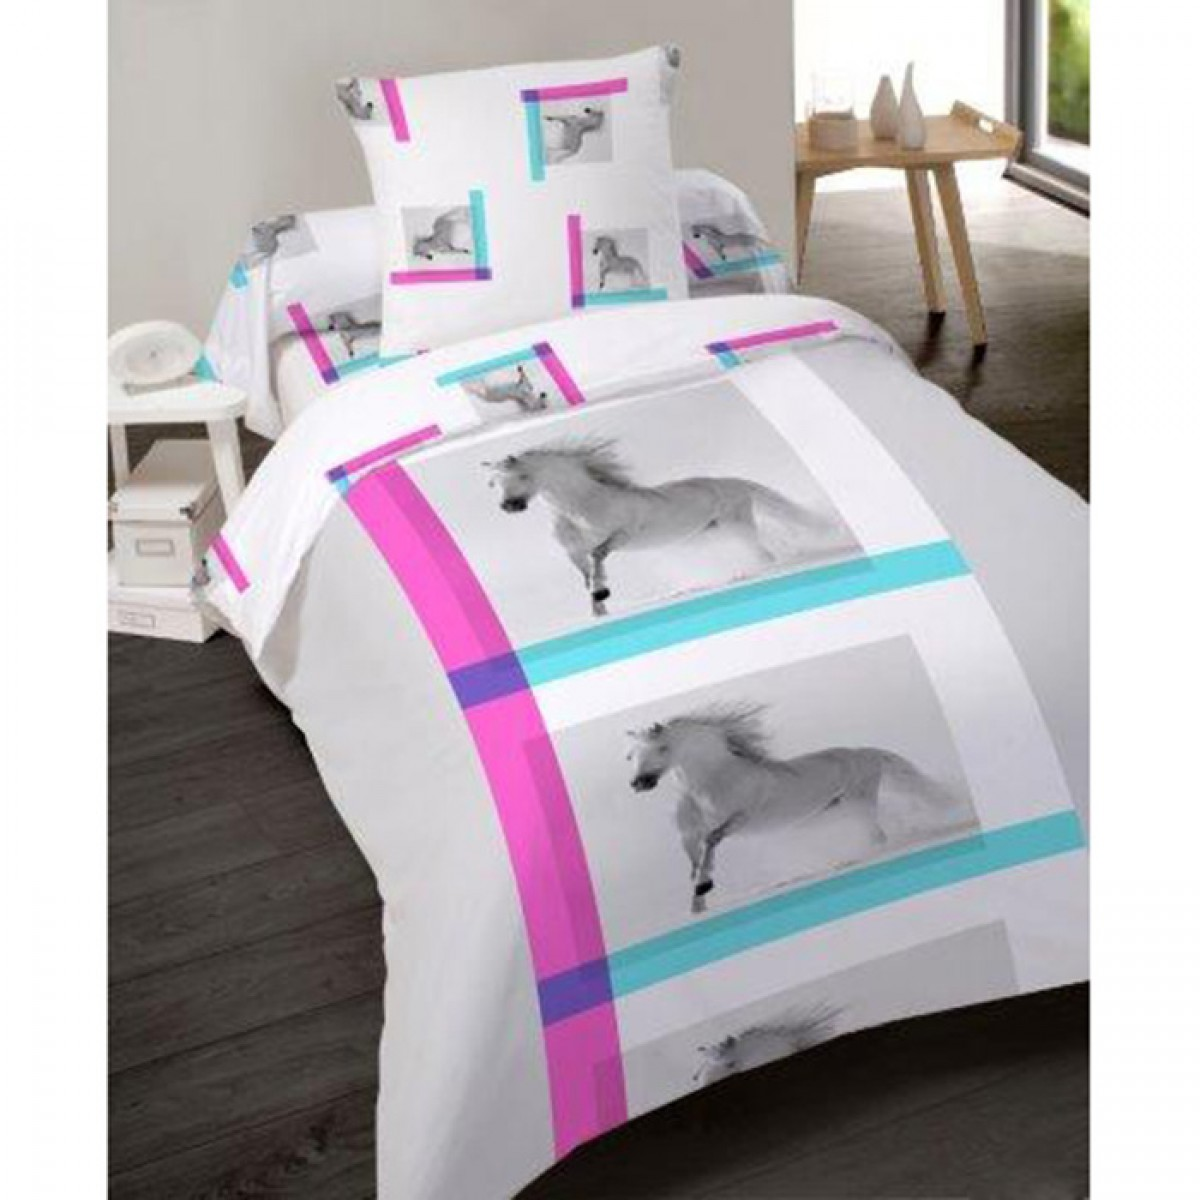 housse de couette 140x200cm cheval en polyester les douces nuits de ma linge de maison. Black Bedroom Furniture Sets. Home Design Ideas